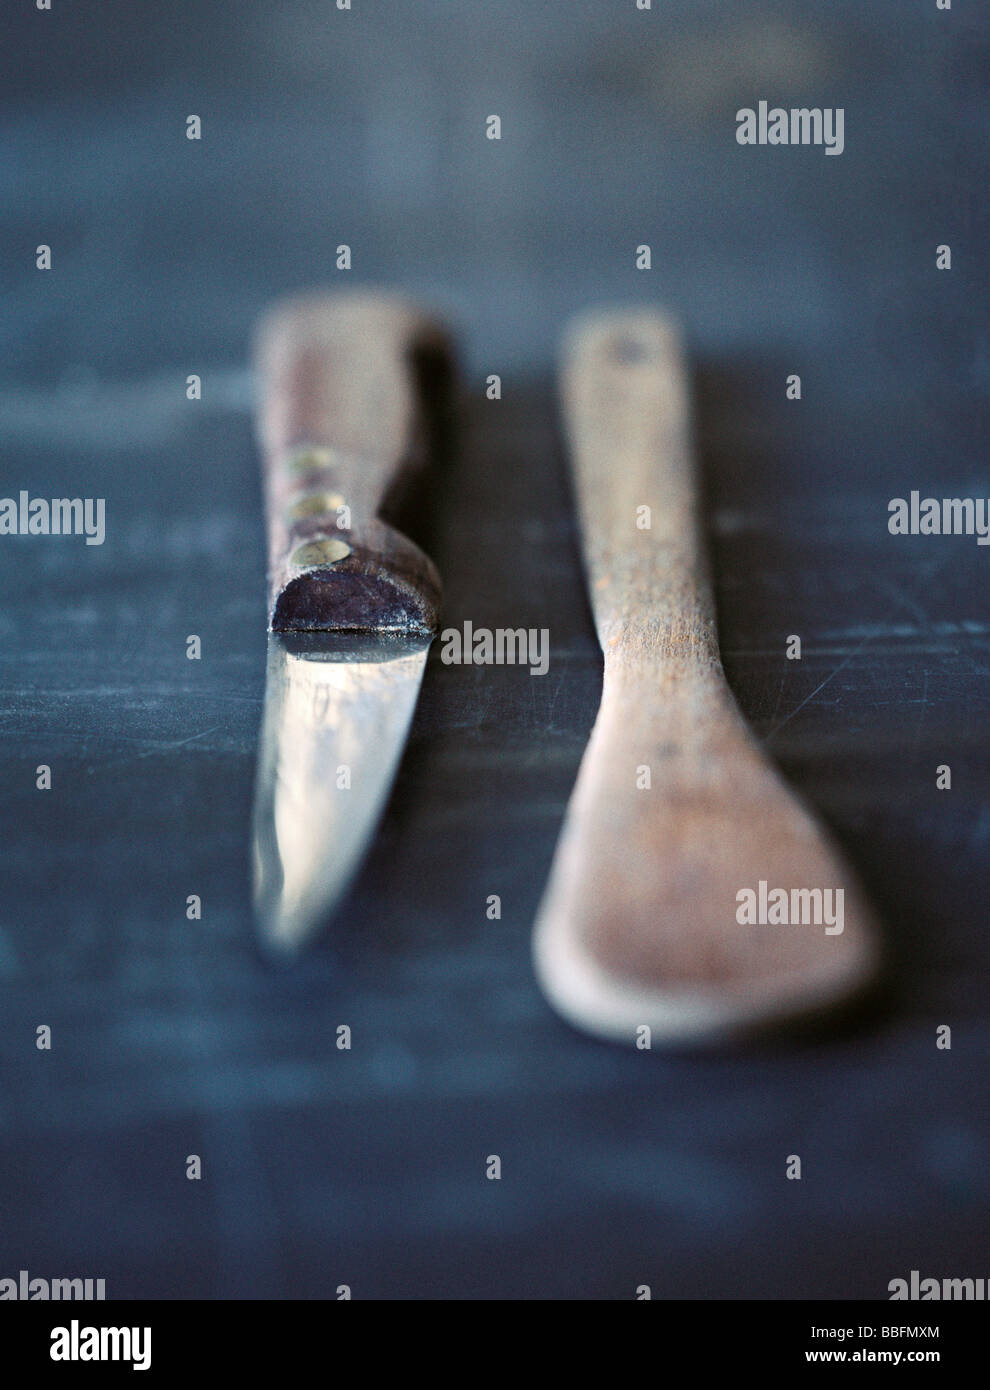 Paring knife with wooden spoon - Stock Image